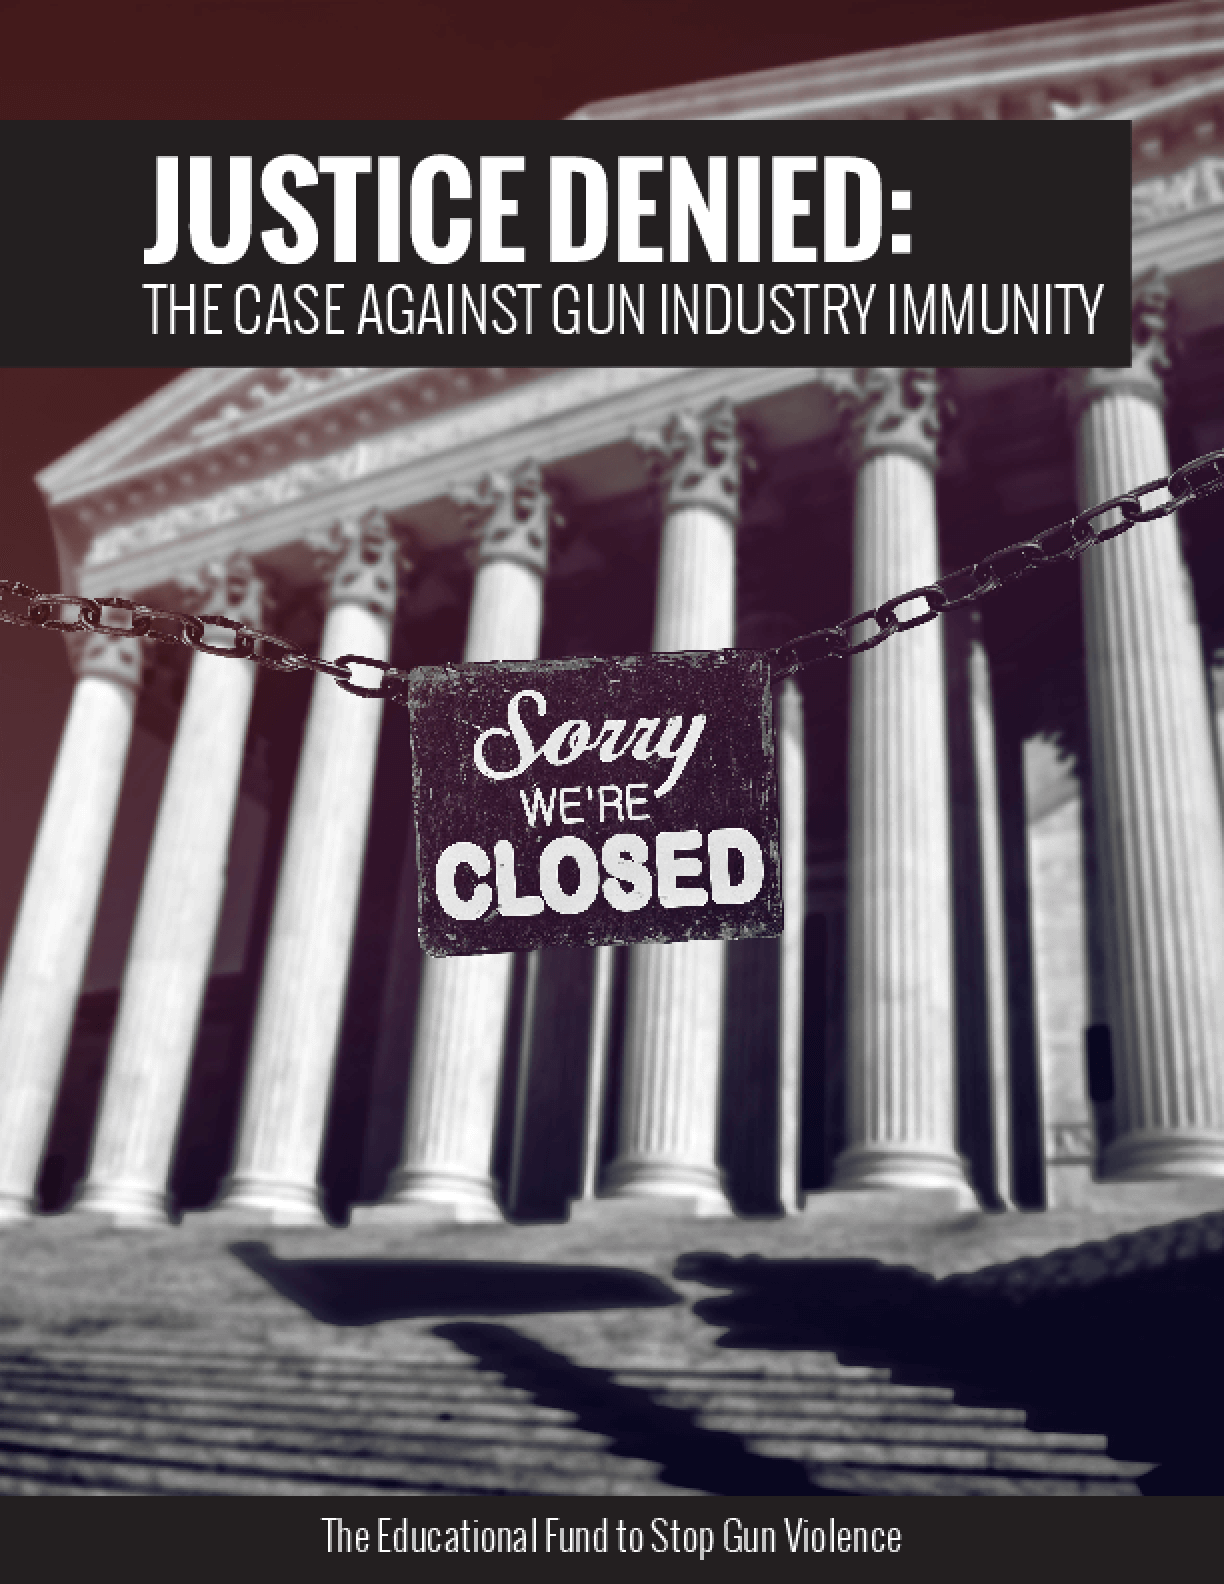 Justice Denied: The Case Against Gun Industry Immunity